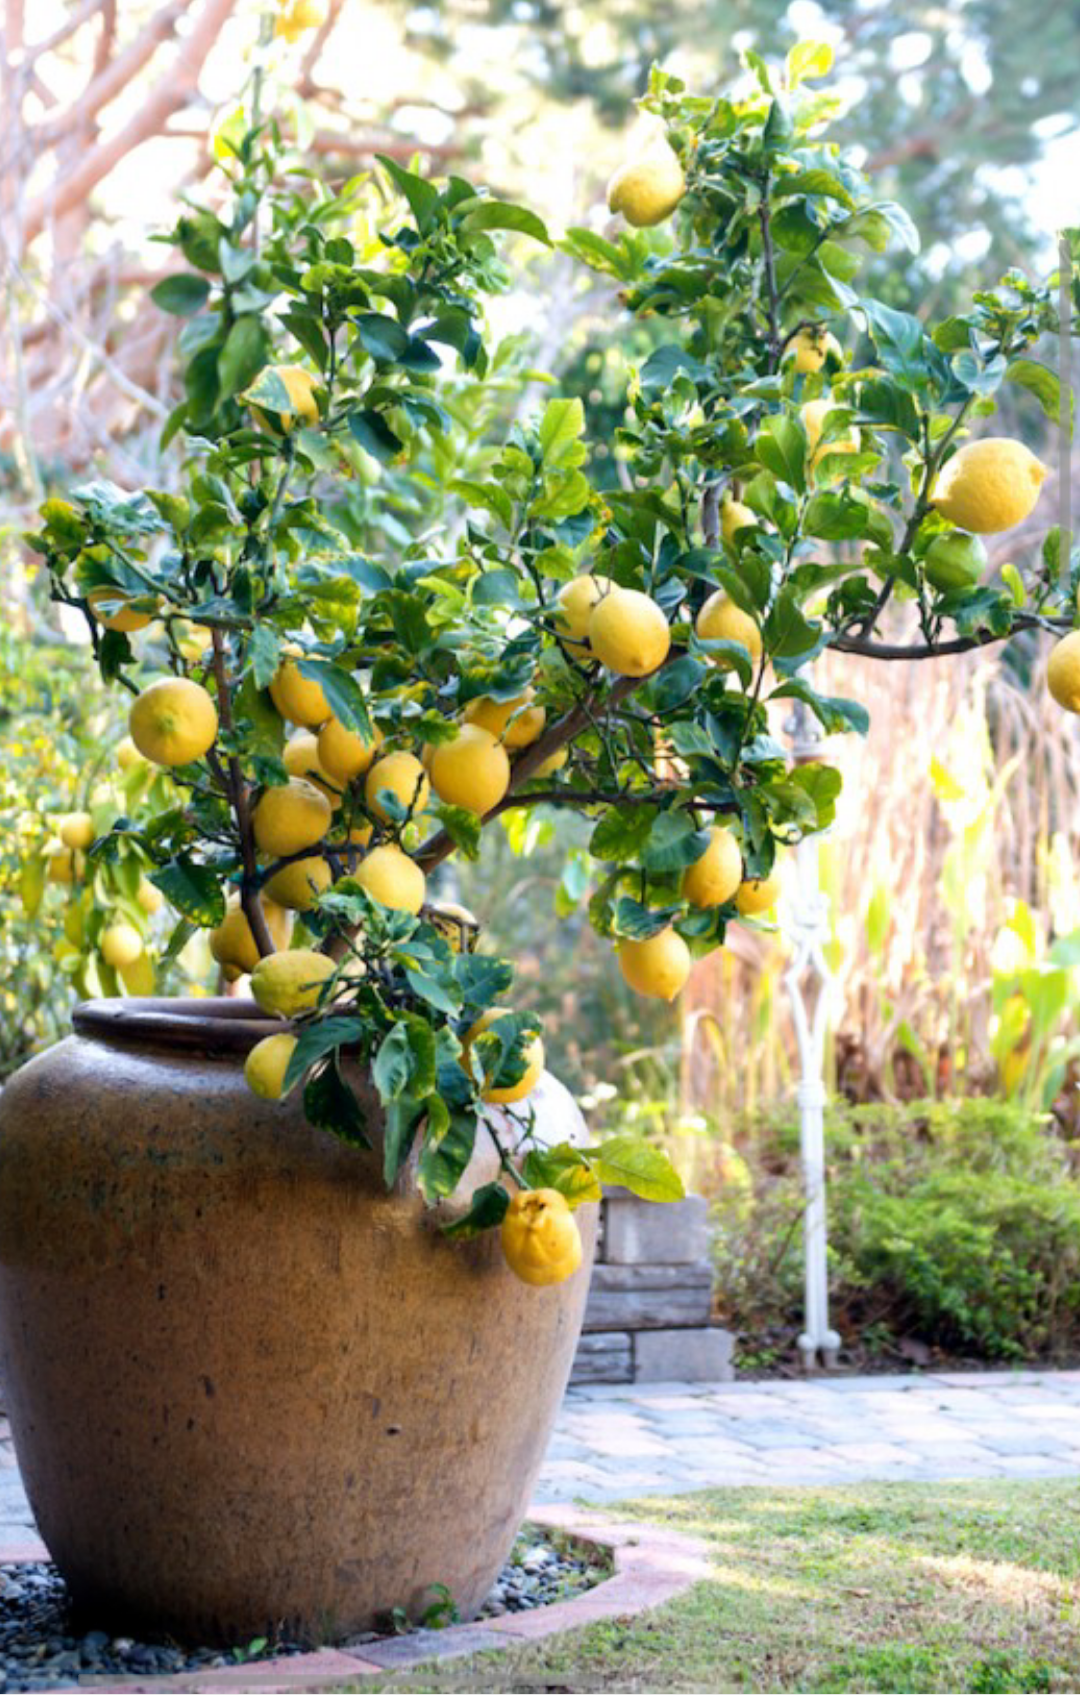 Pin By Elizabeth Ruiz Diaz On Naturaleza Fruit Trees In Containers How To Grow Lemon Potted Trees